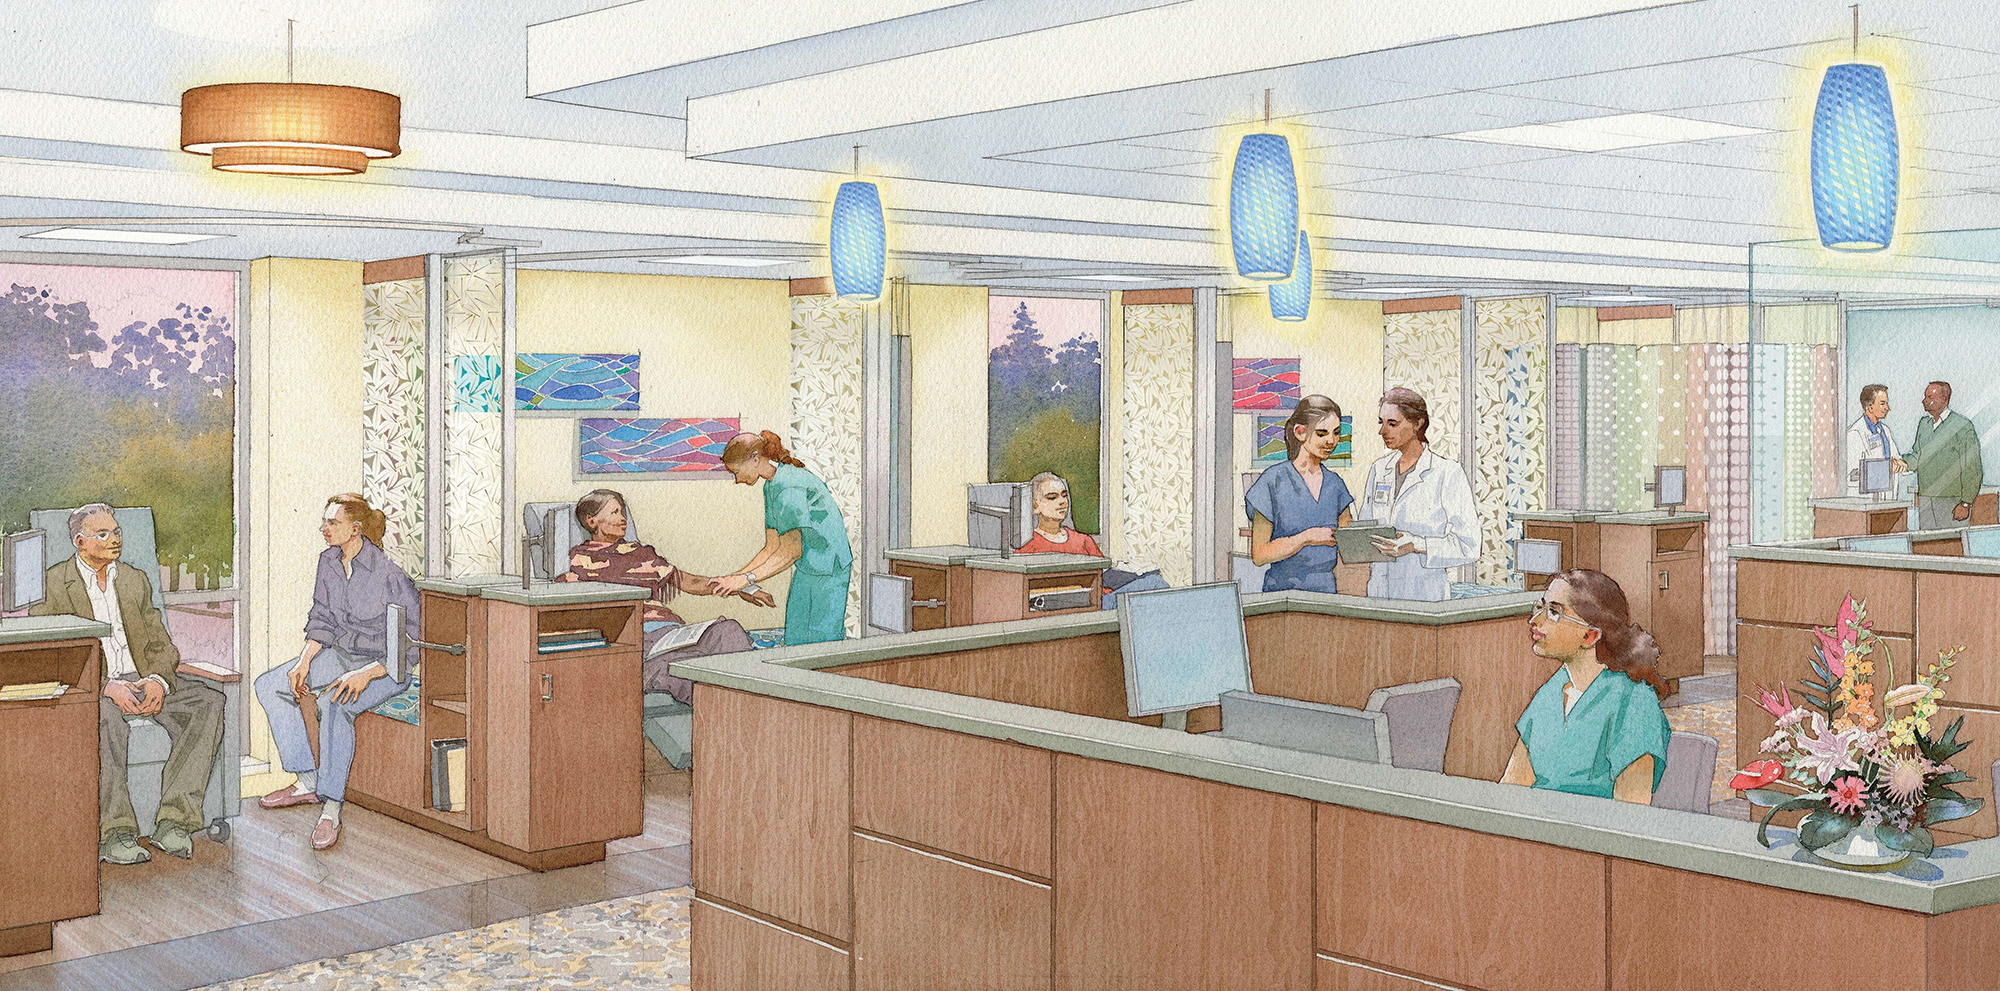 SCH raises the bar with new cancer care center